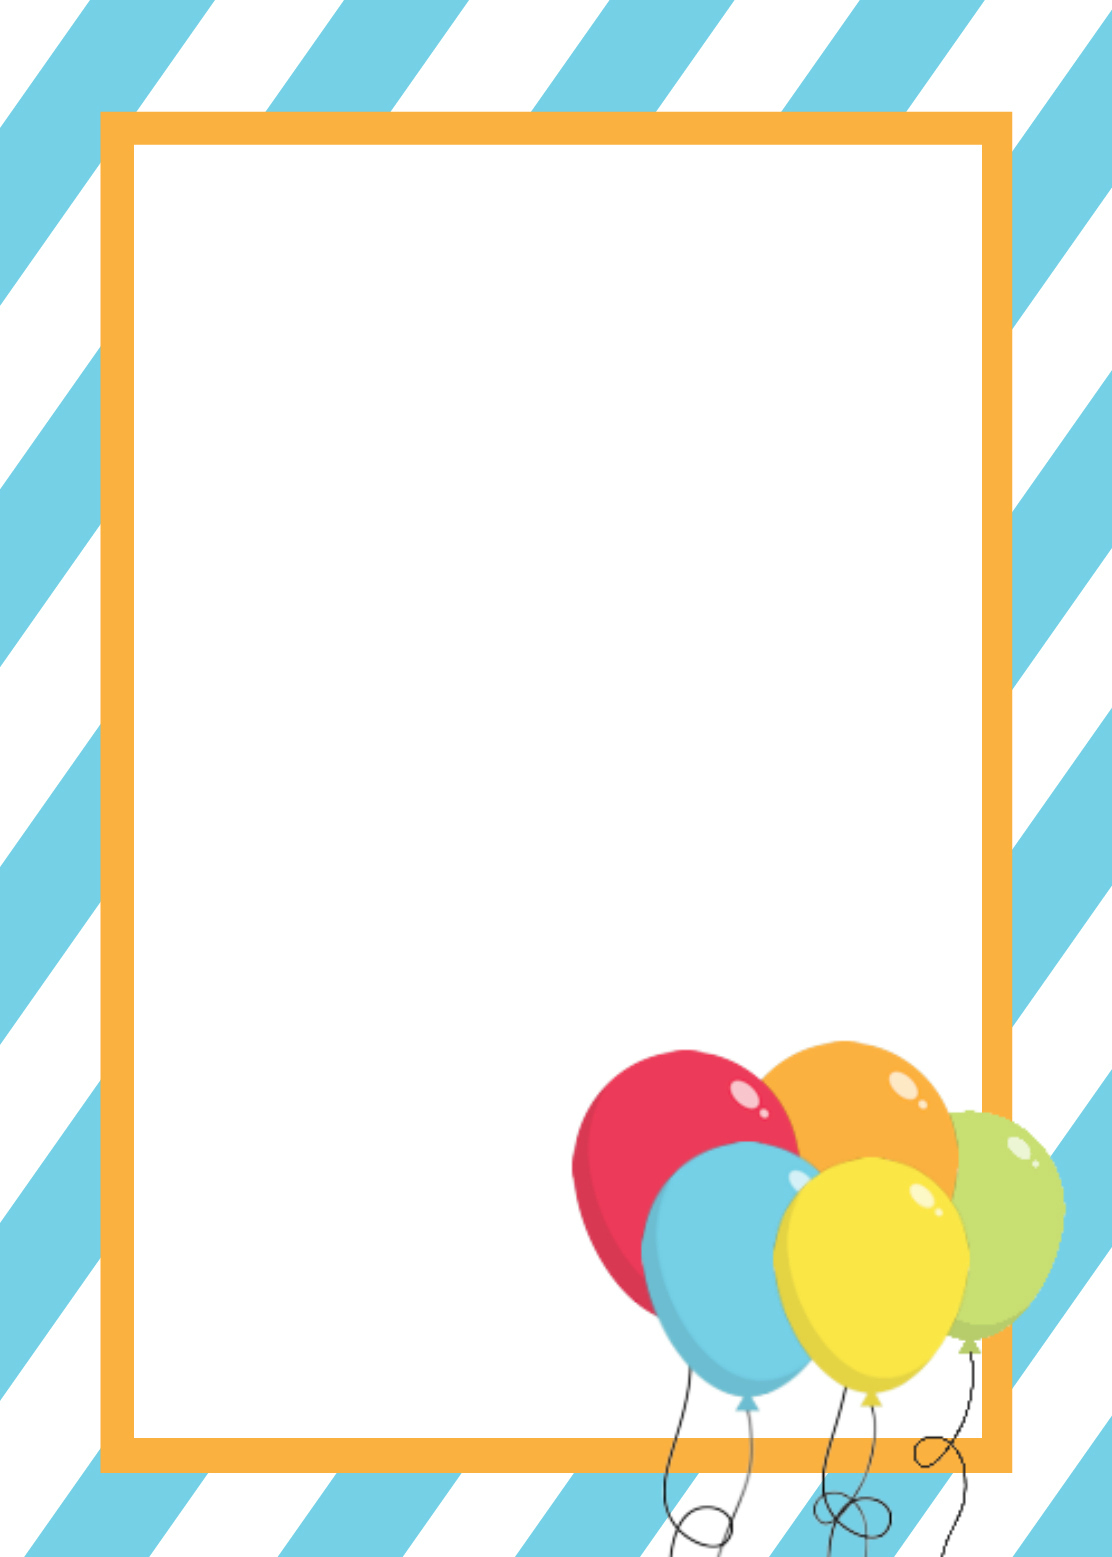 Free Printable Birthday Invitation Templates - Blank birthday invitation card templates